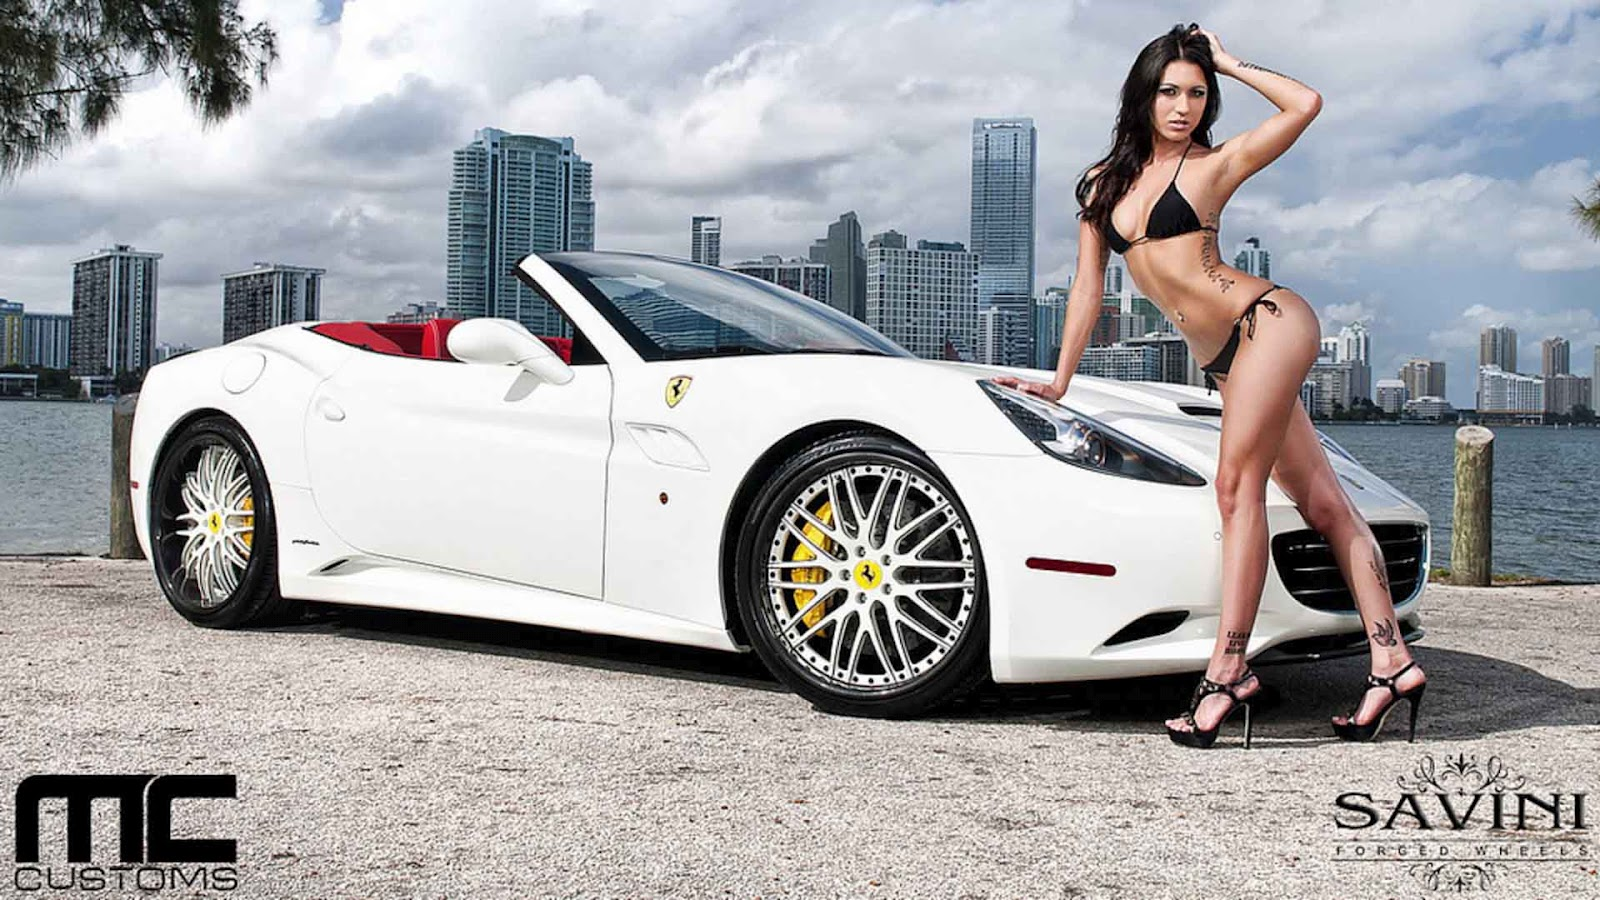 Sexy Girls And Cars Wallpaper